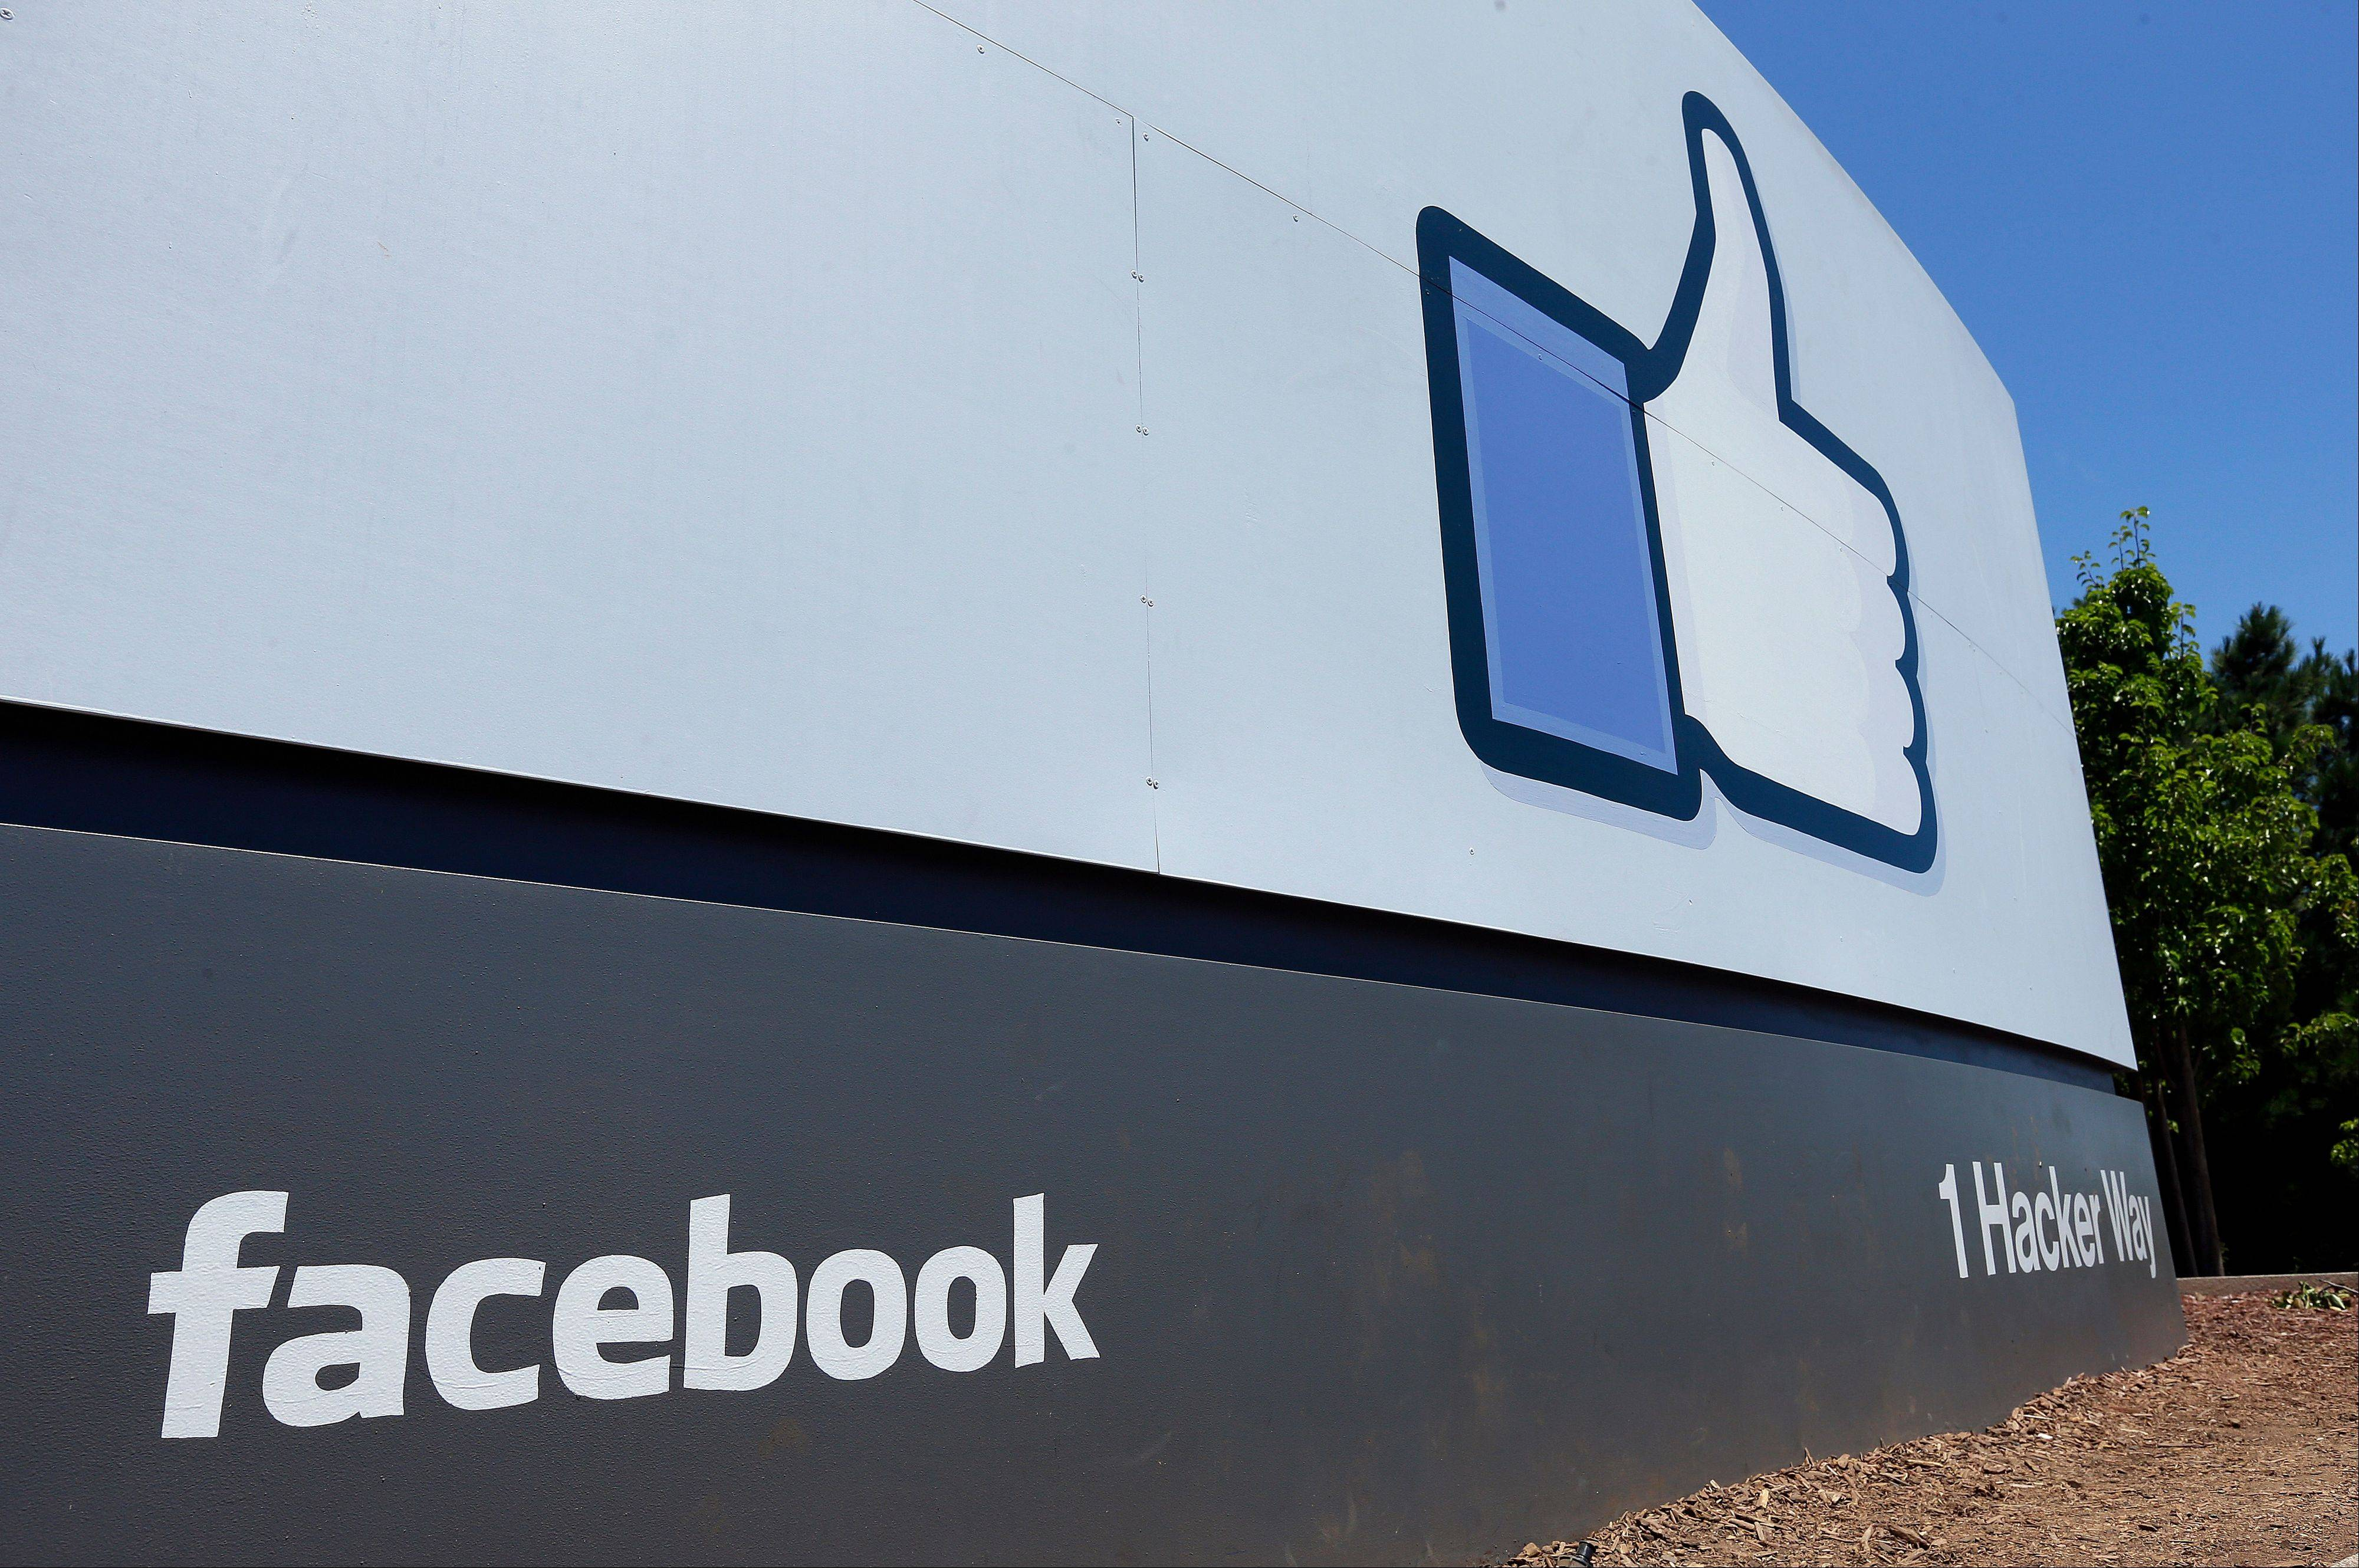 Facebook's mobile ads generated 41 percent of revenue last quarter, up from 14 percent a year earlier, helping the company top second-quarter profit and sales estimates this week.